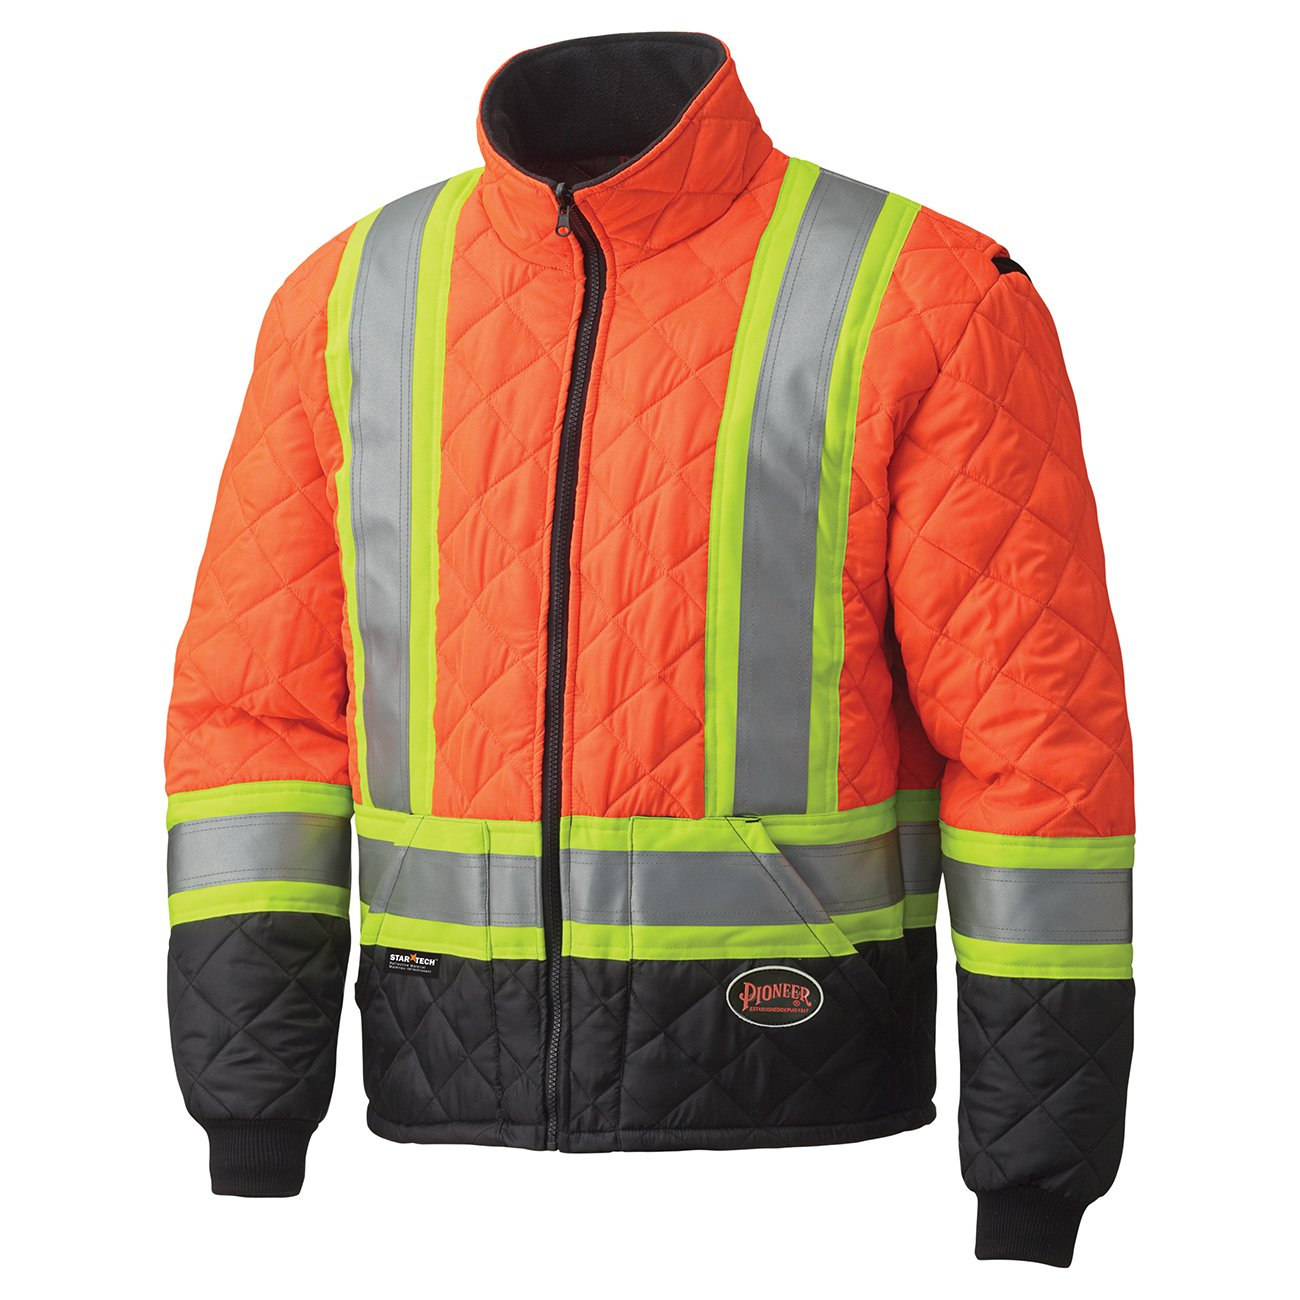 Pioneer V1170150-L High Visibility Quilted Freezer Jacket, Orange, L